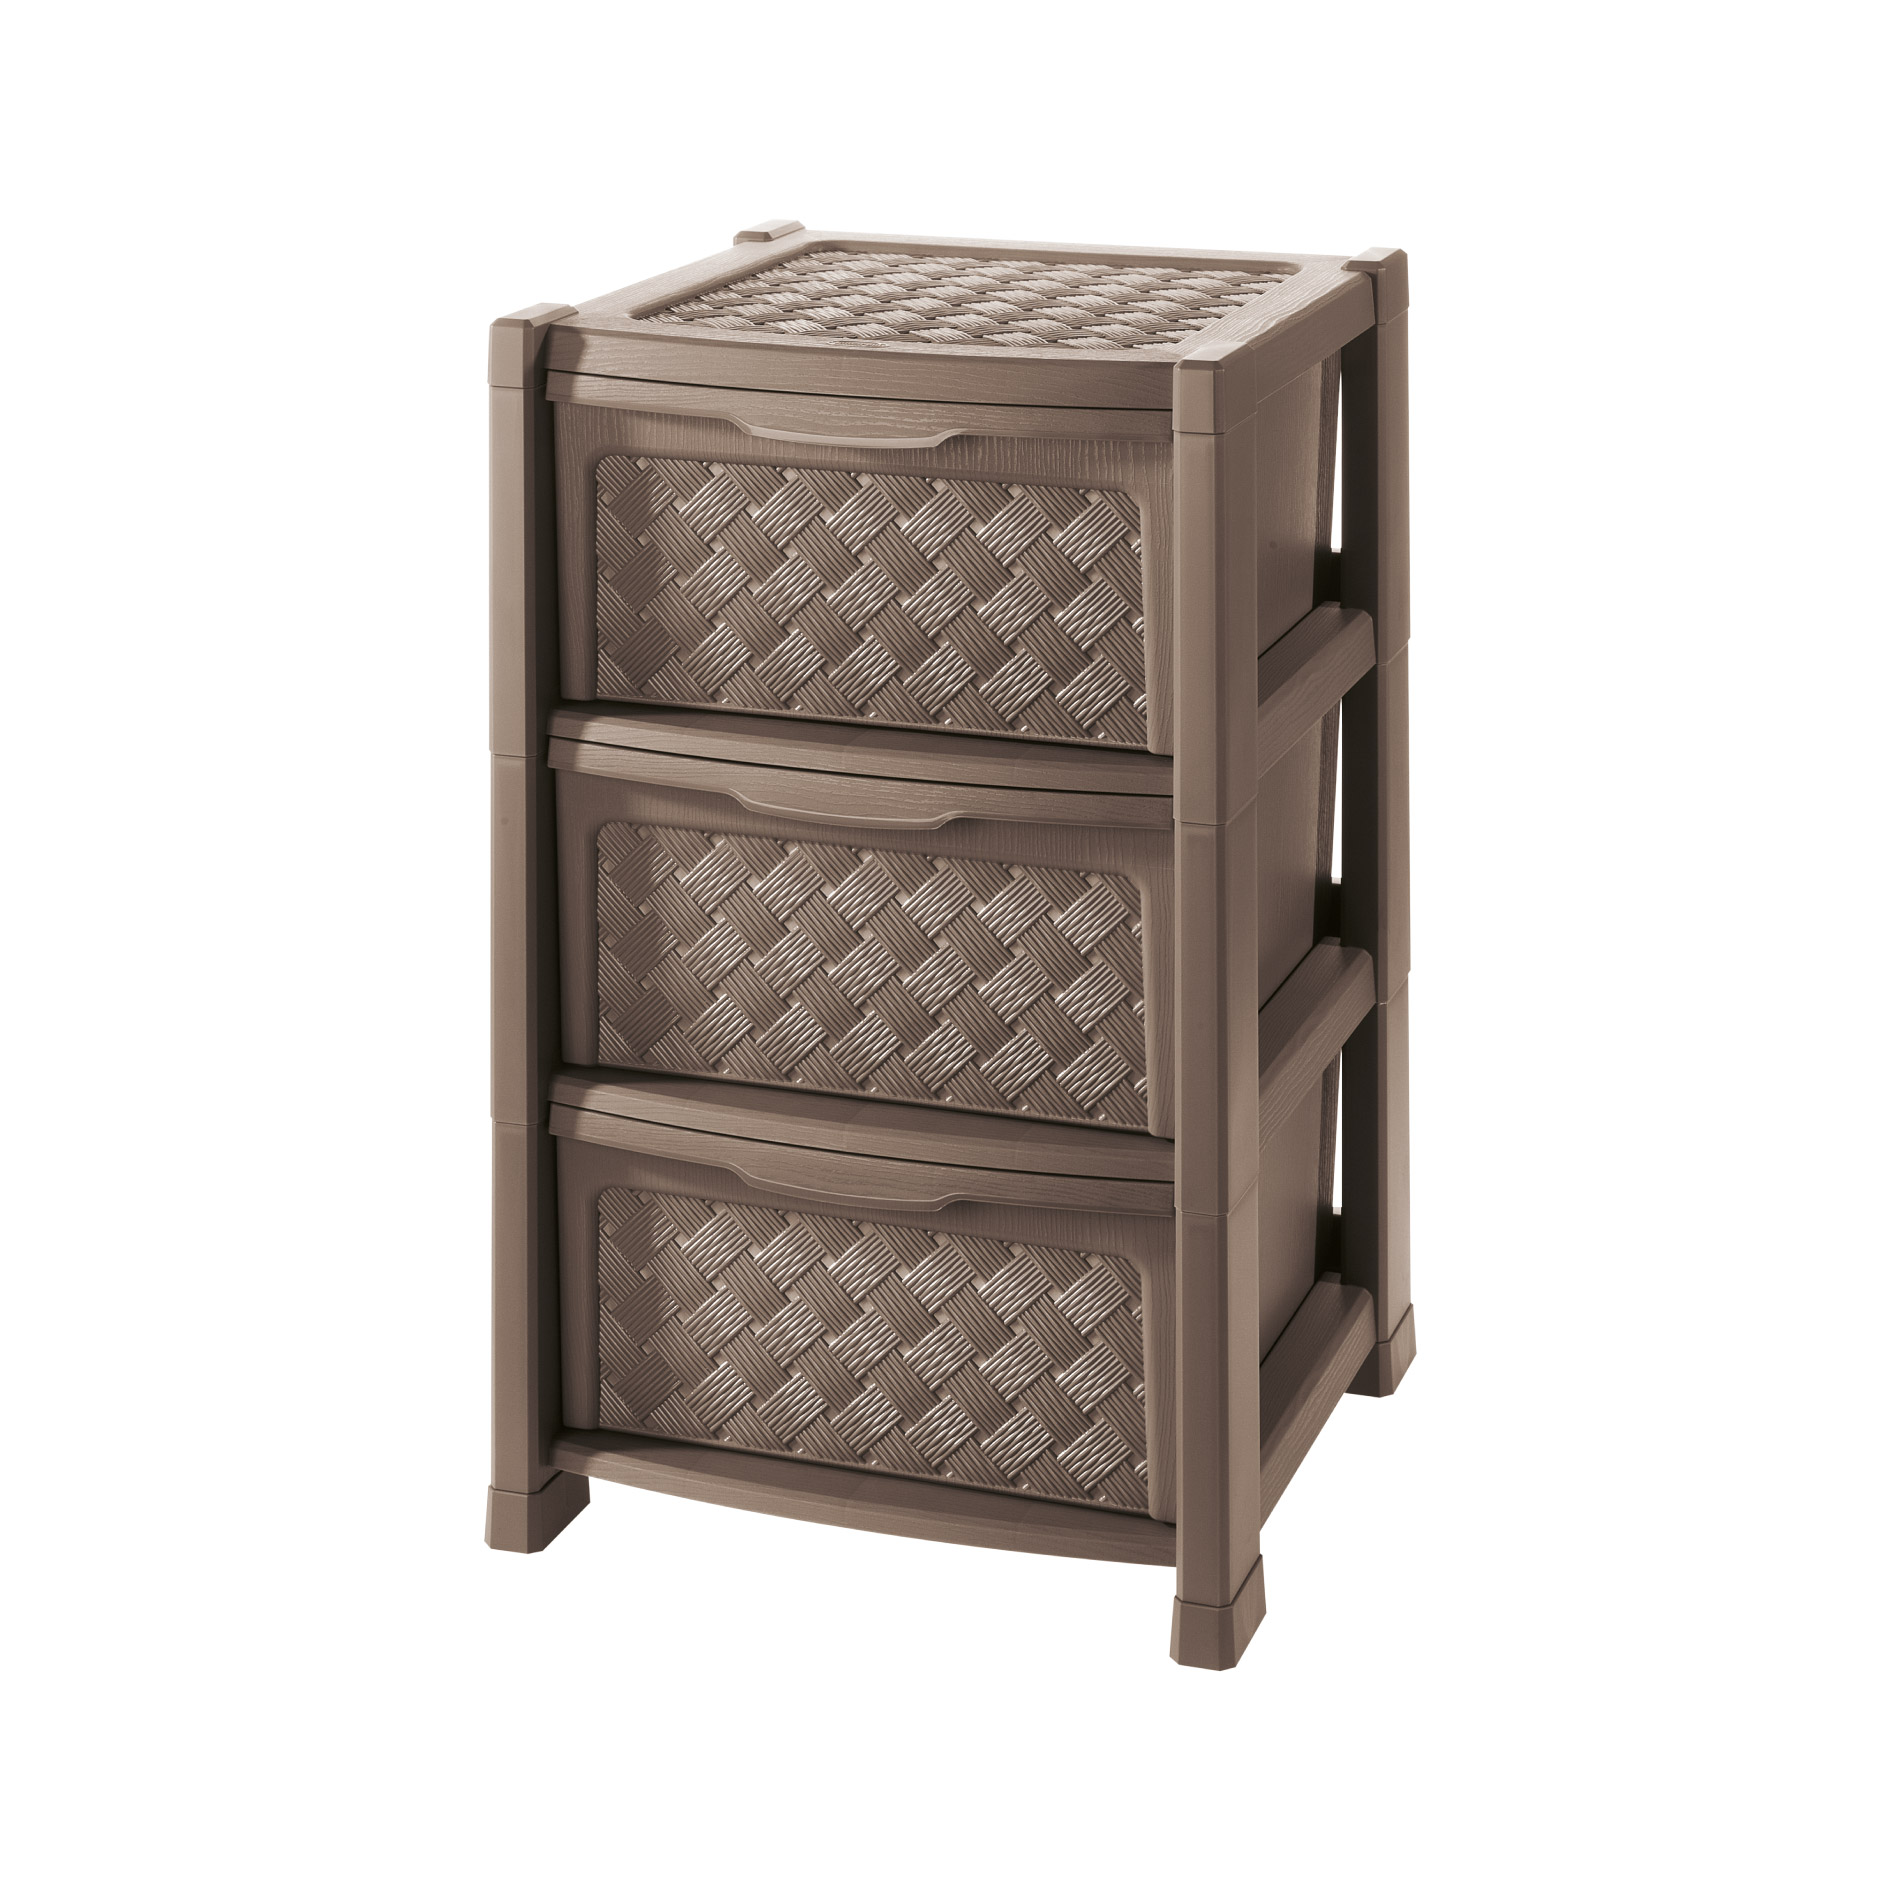 tontarelli shop arianna storage unit 3 drawers. Black Bedroom Furniture Sets. Home Design Ideas